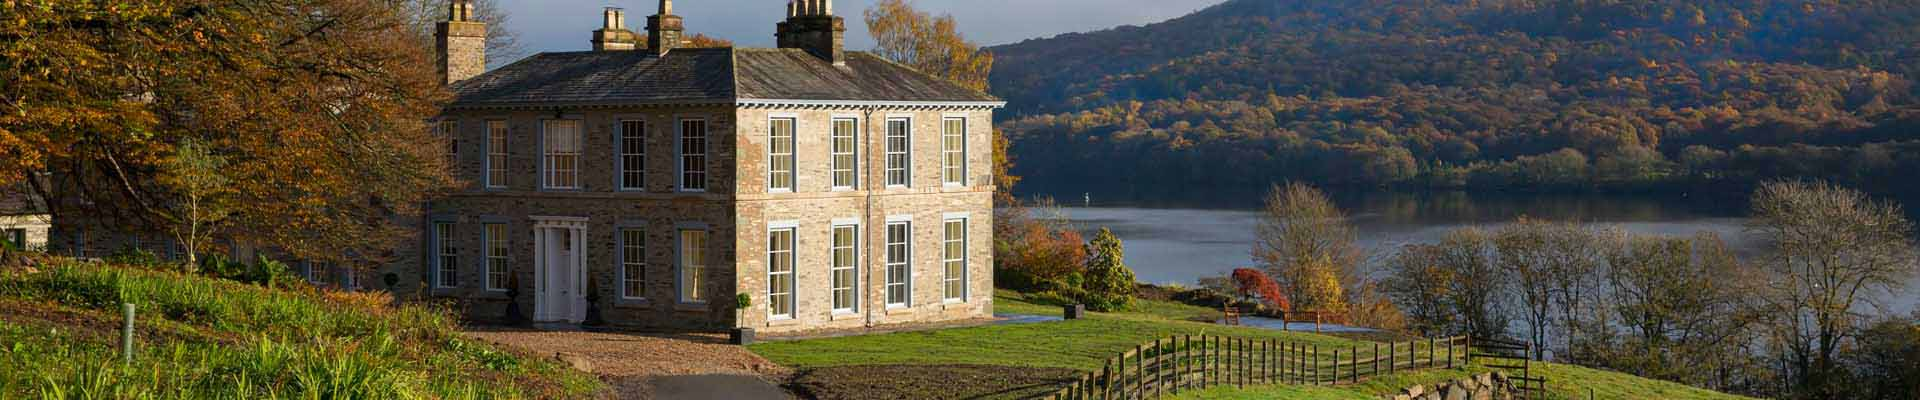 Silverholme the Mansion for rent in England